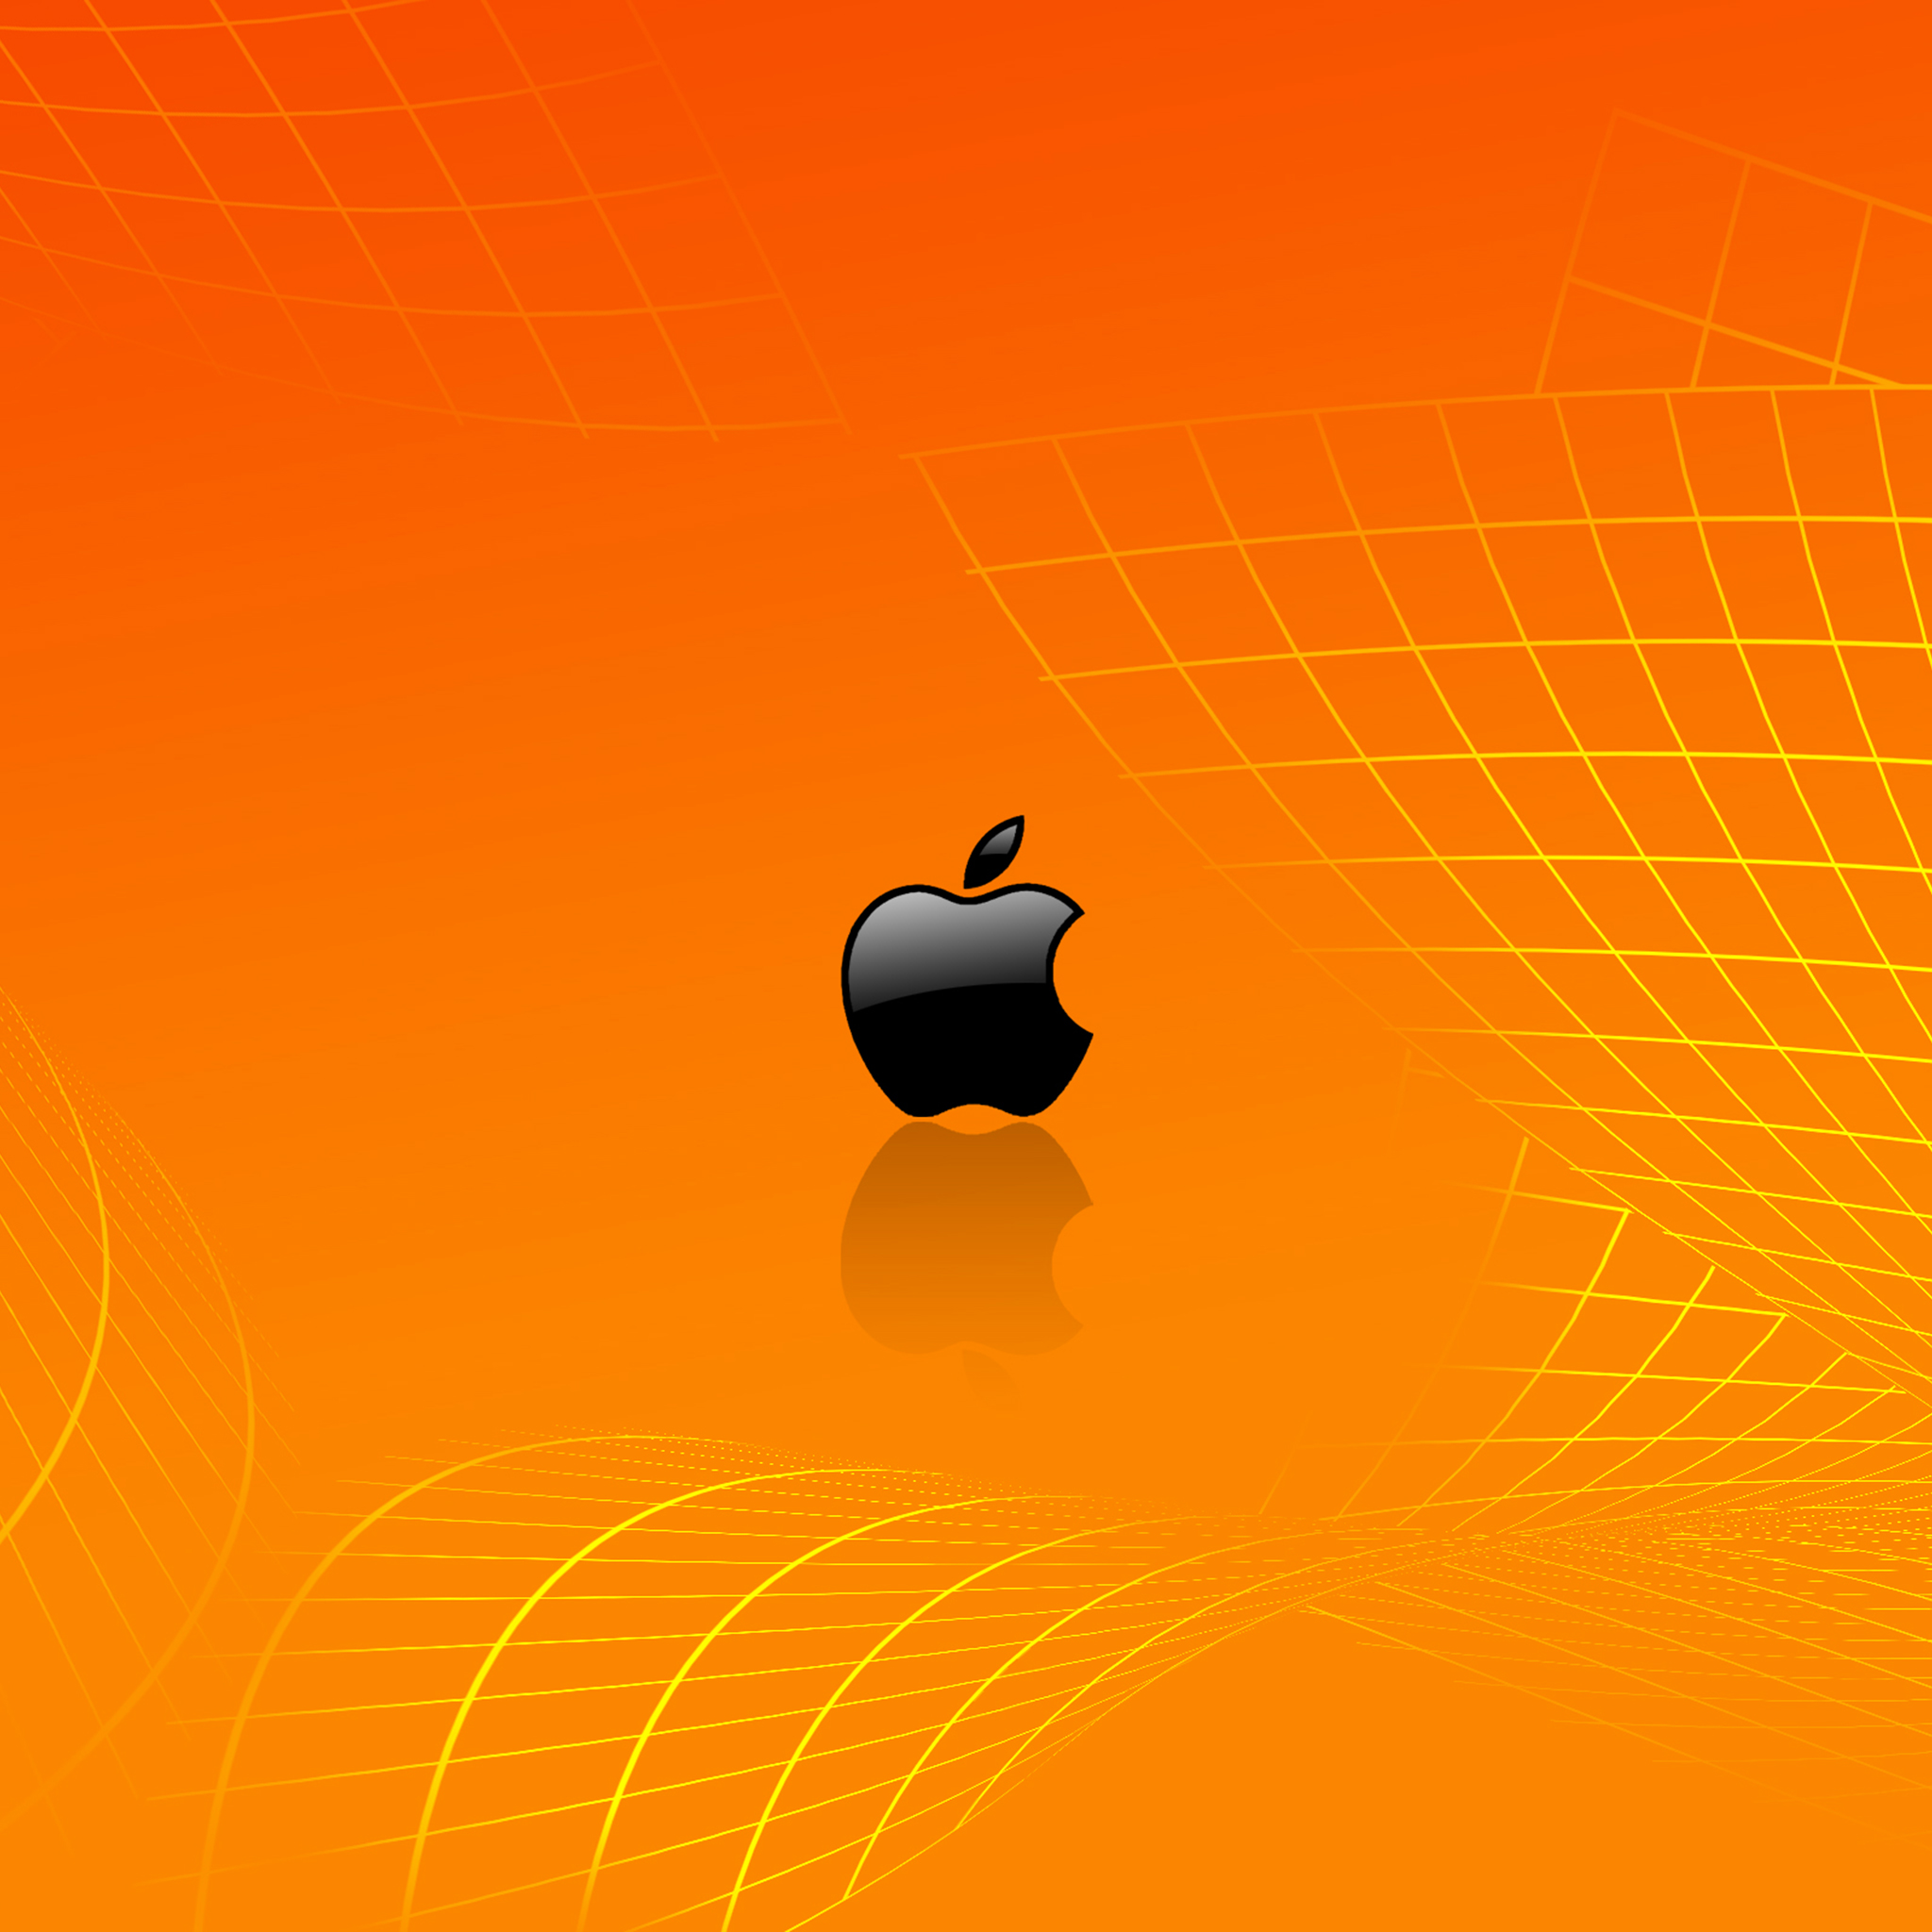 Iphone 6s Wallpaper Fall Orange Apple Ipad Wallpaper For Iphone X 8 7 6 Free